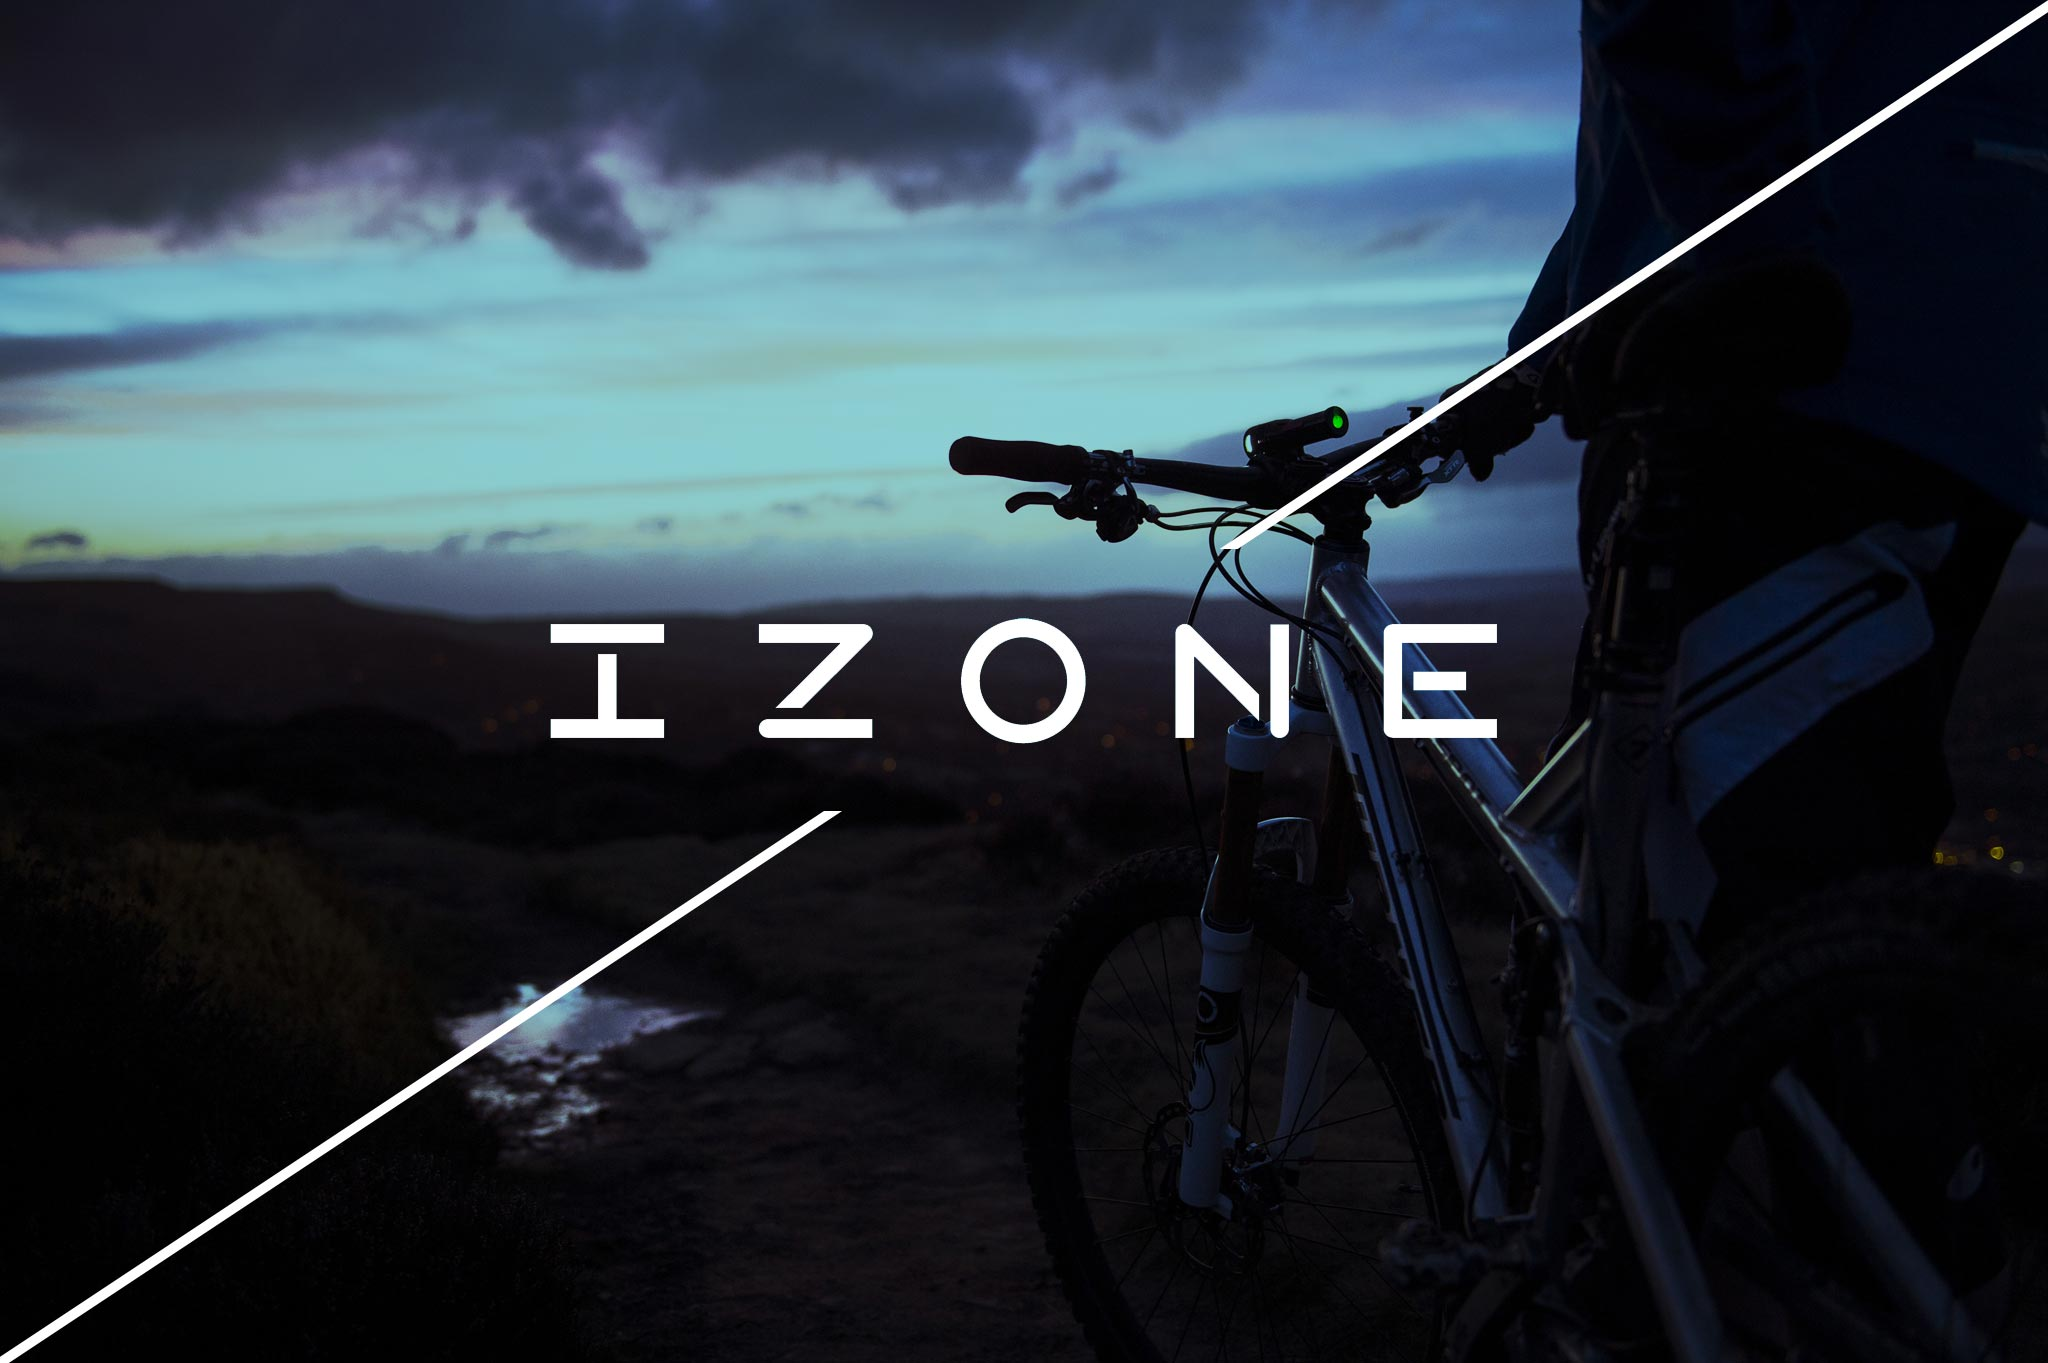 IZONE products are designed to give the user an exceptional tool, both functionally and aesthetically.